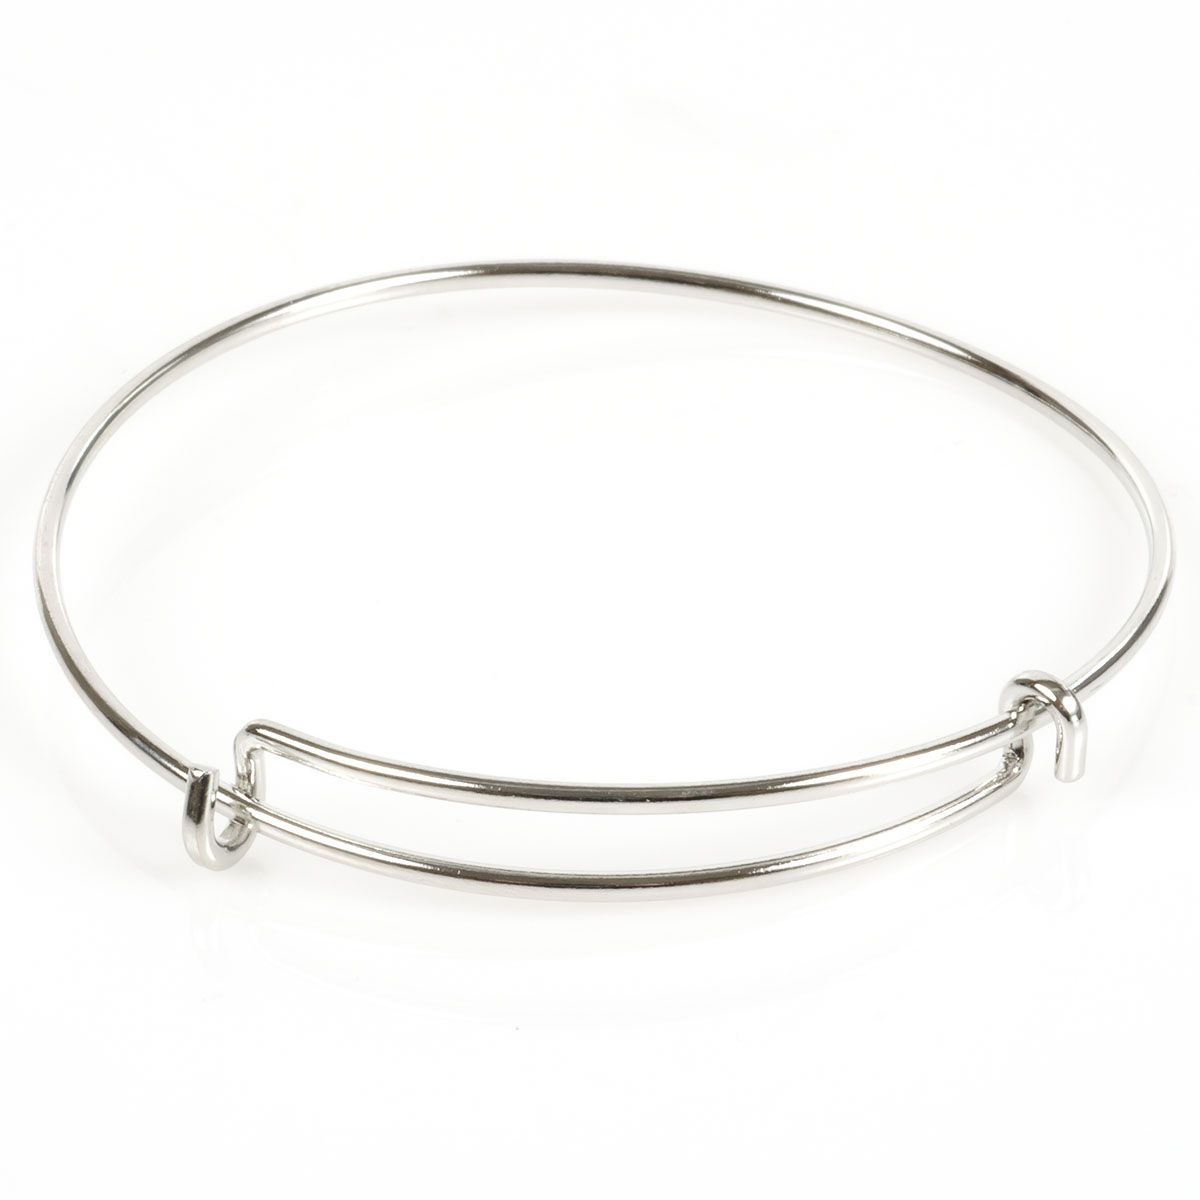 Steel Wire Adjustable Bracelet With Double Loop